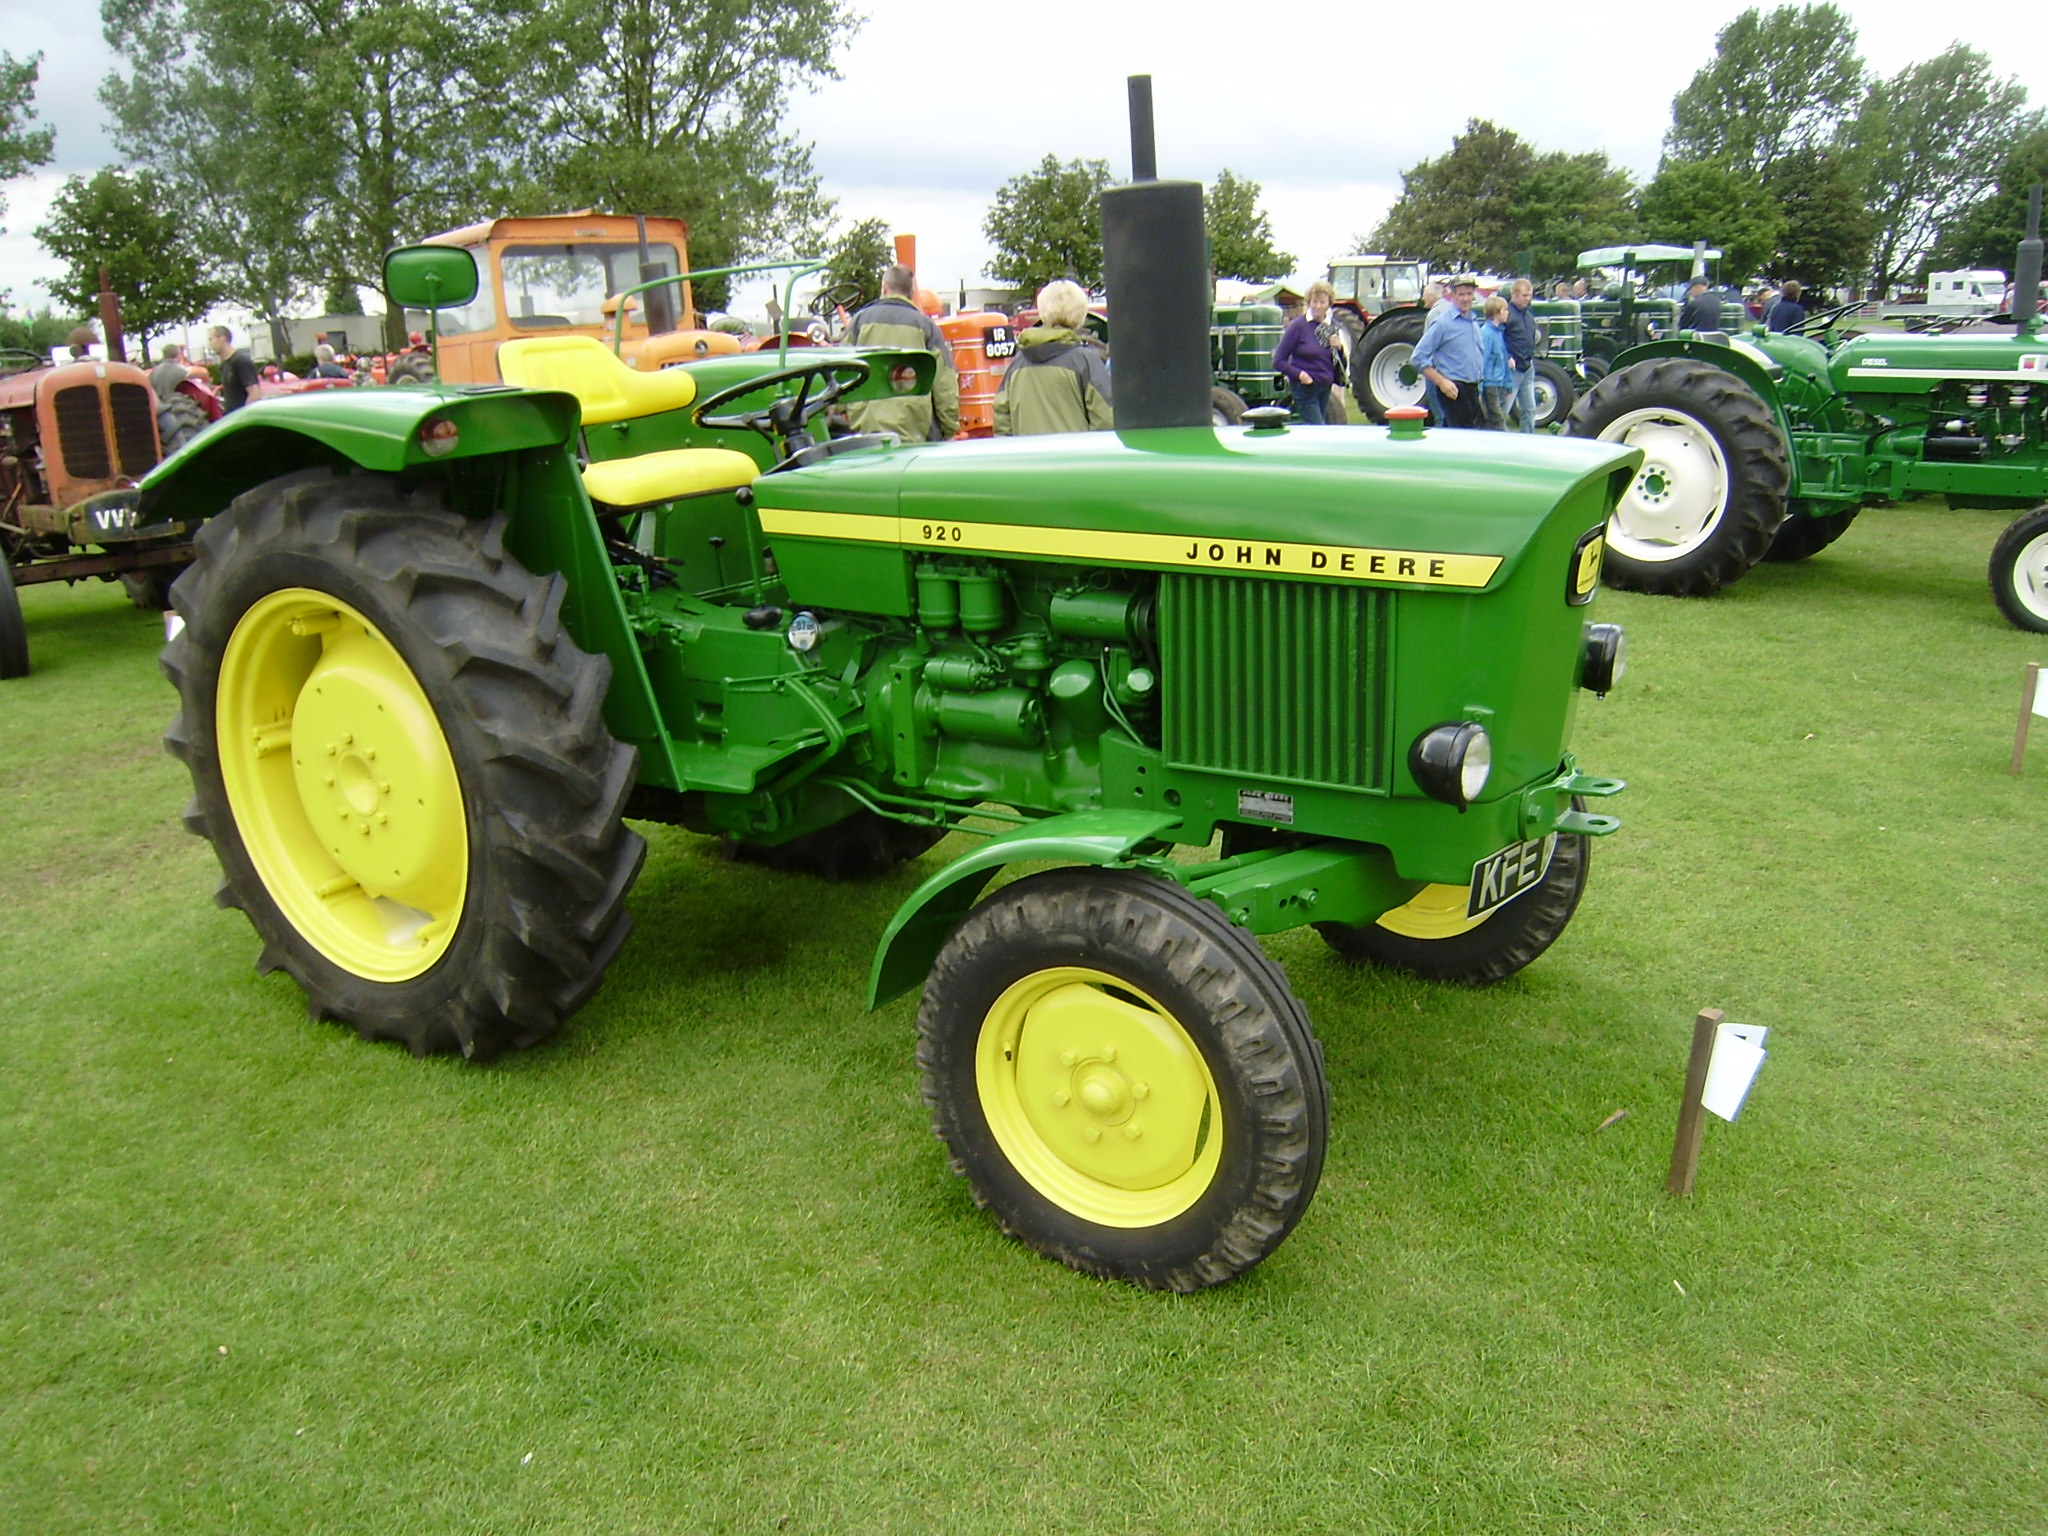 John Deere John Deere : John deere history odd facts about